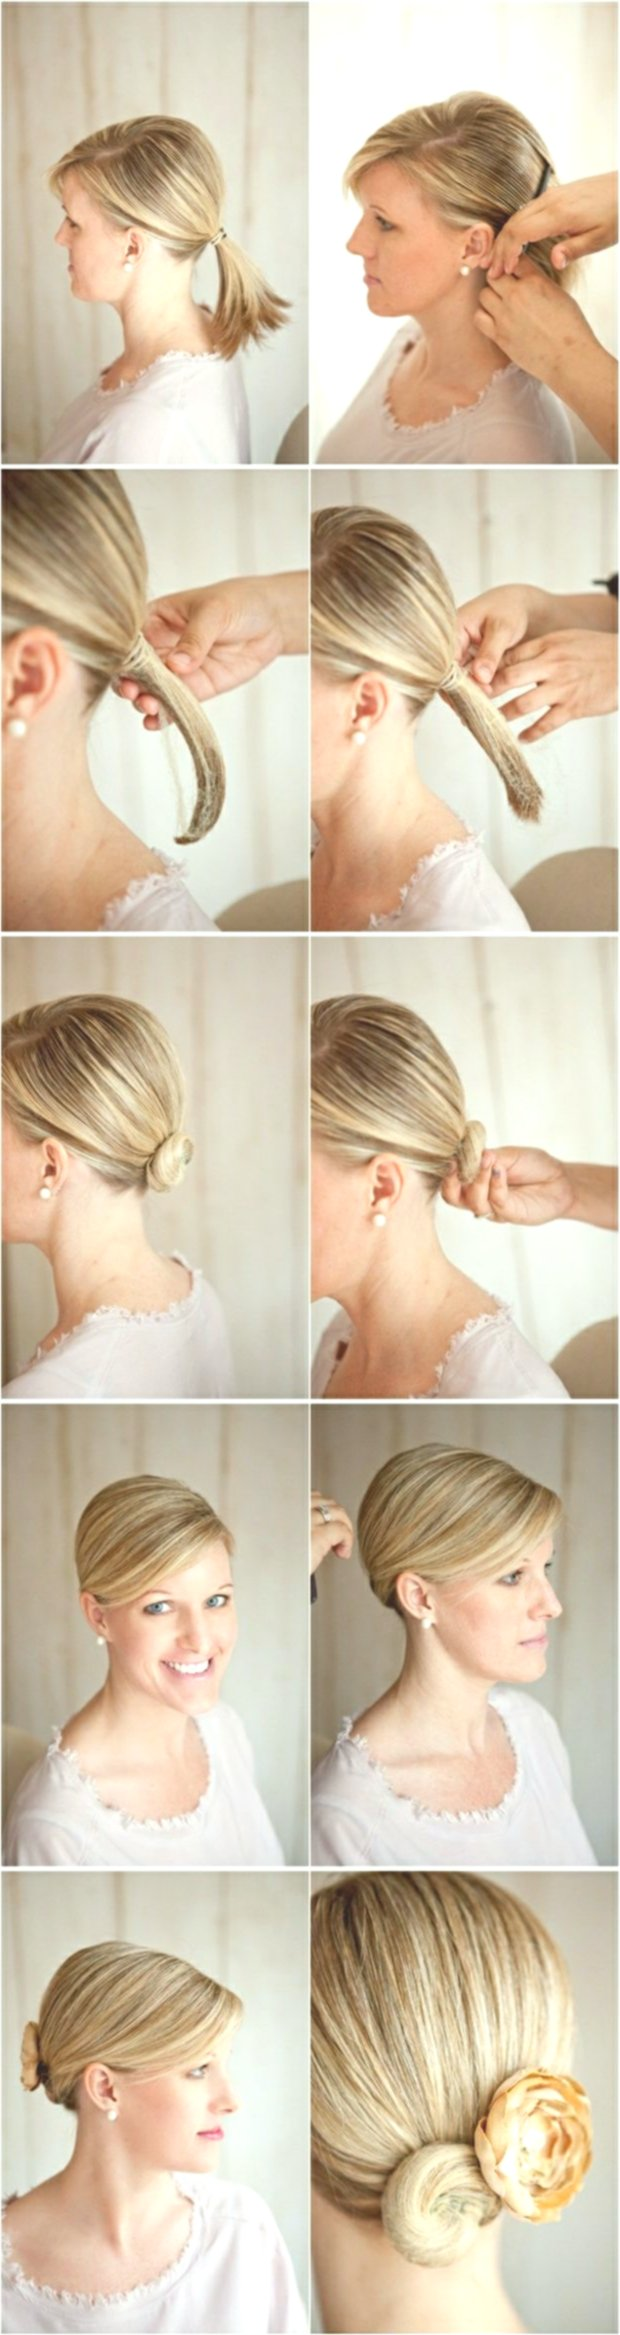 superb updos made easy collection-awesome updos easily made reviews